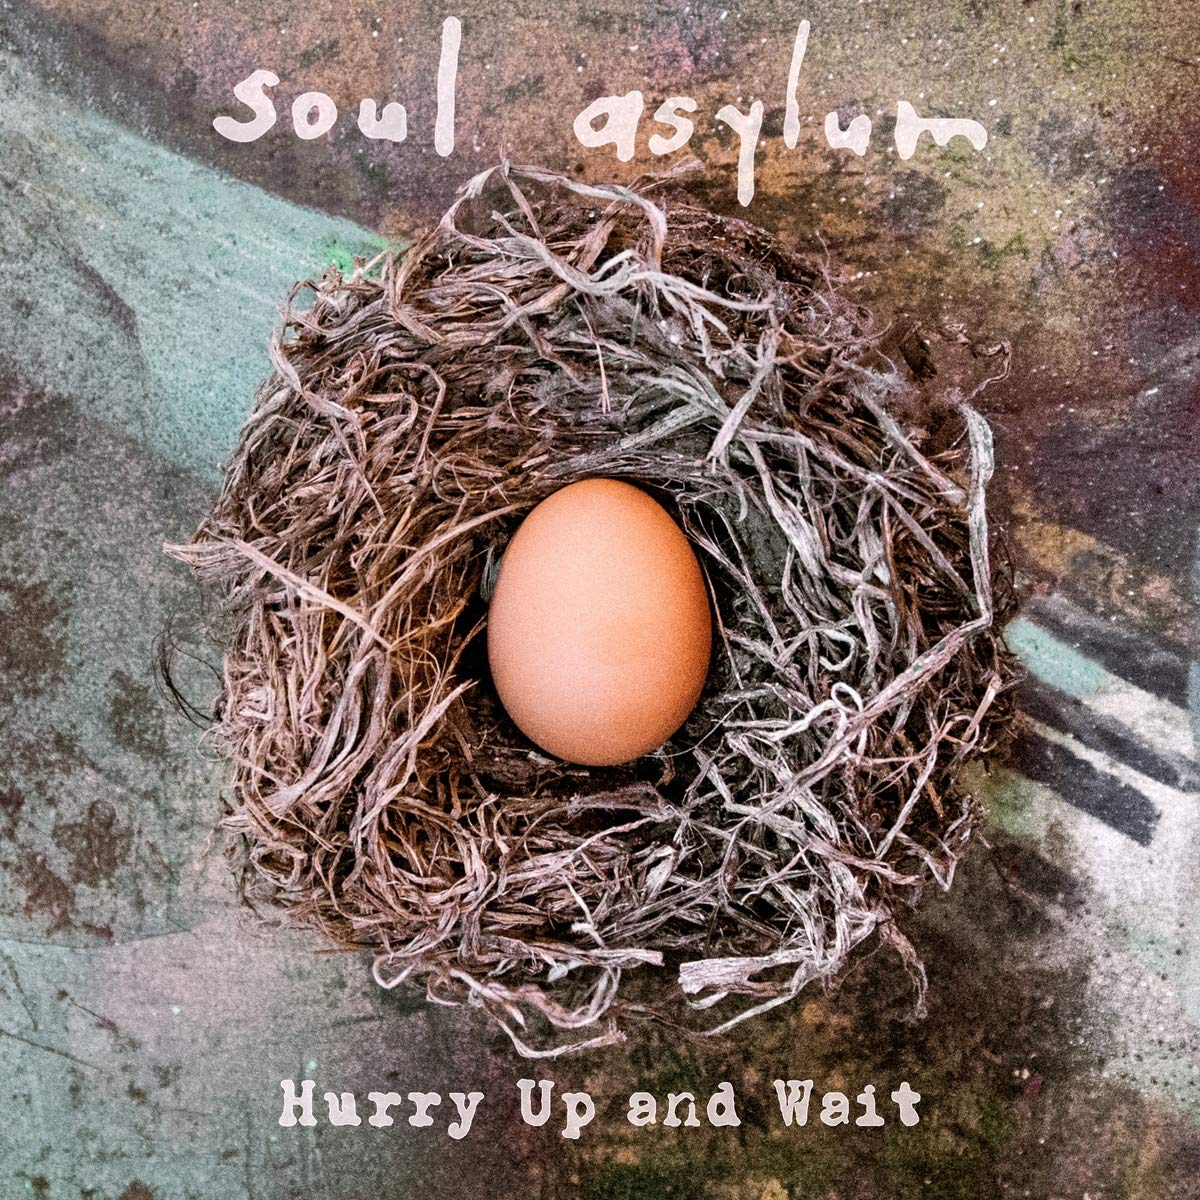 Soul Asylum - Hurry Up And Wait (2020) [FLAC] Download